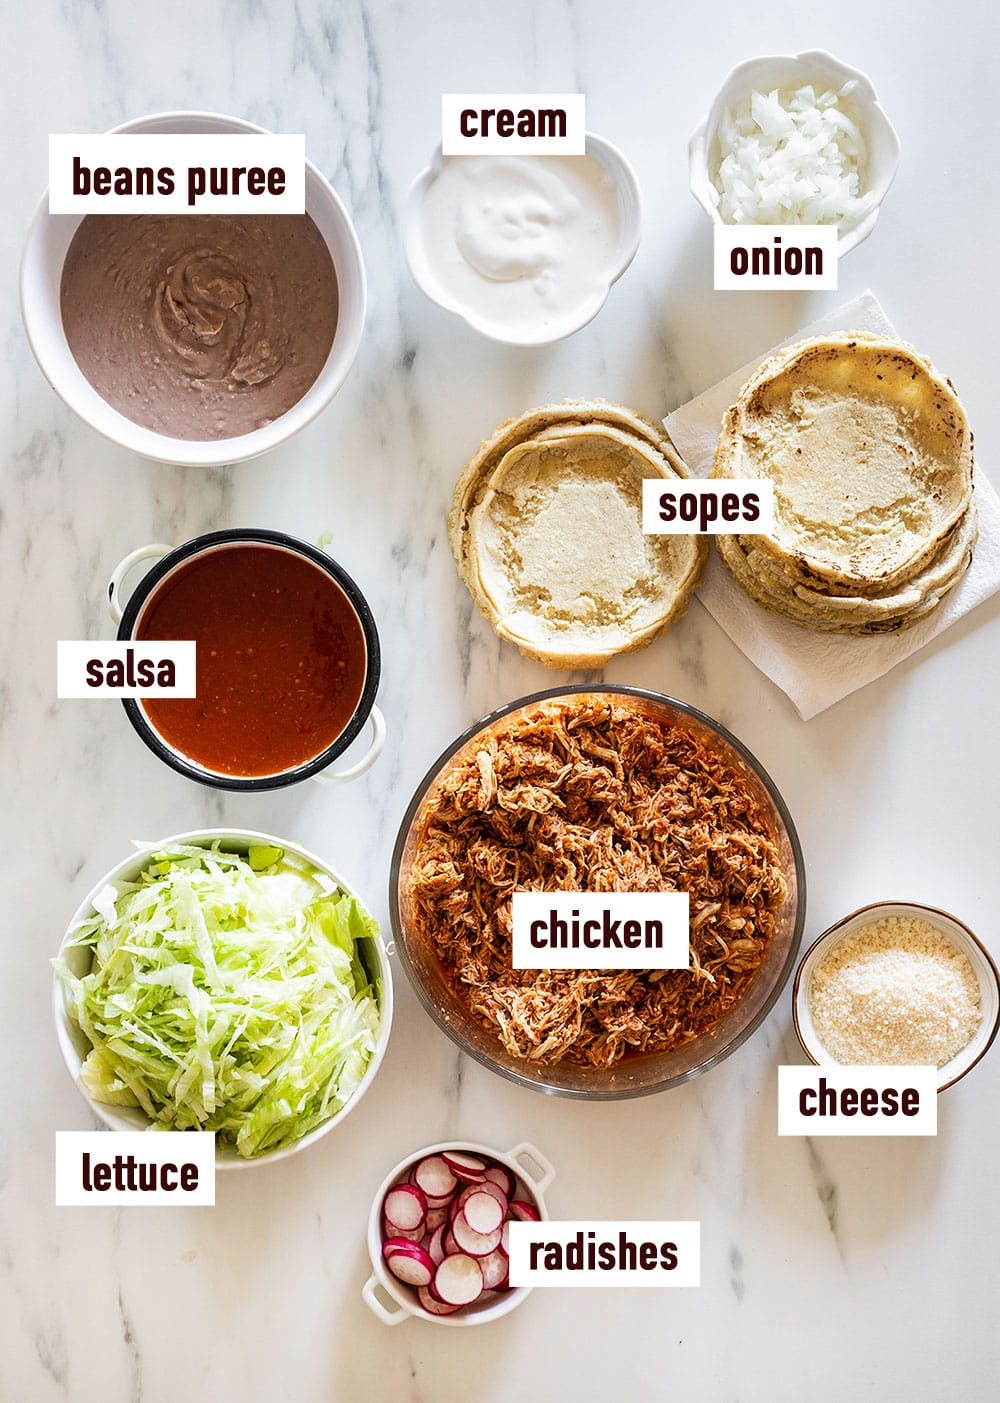 Ingredients for chicken sopes displayed on a white surface and labeled with names.